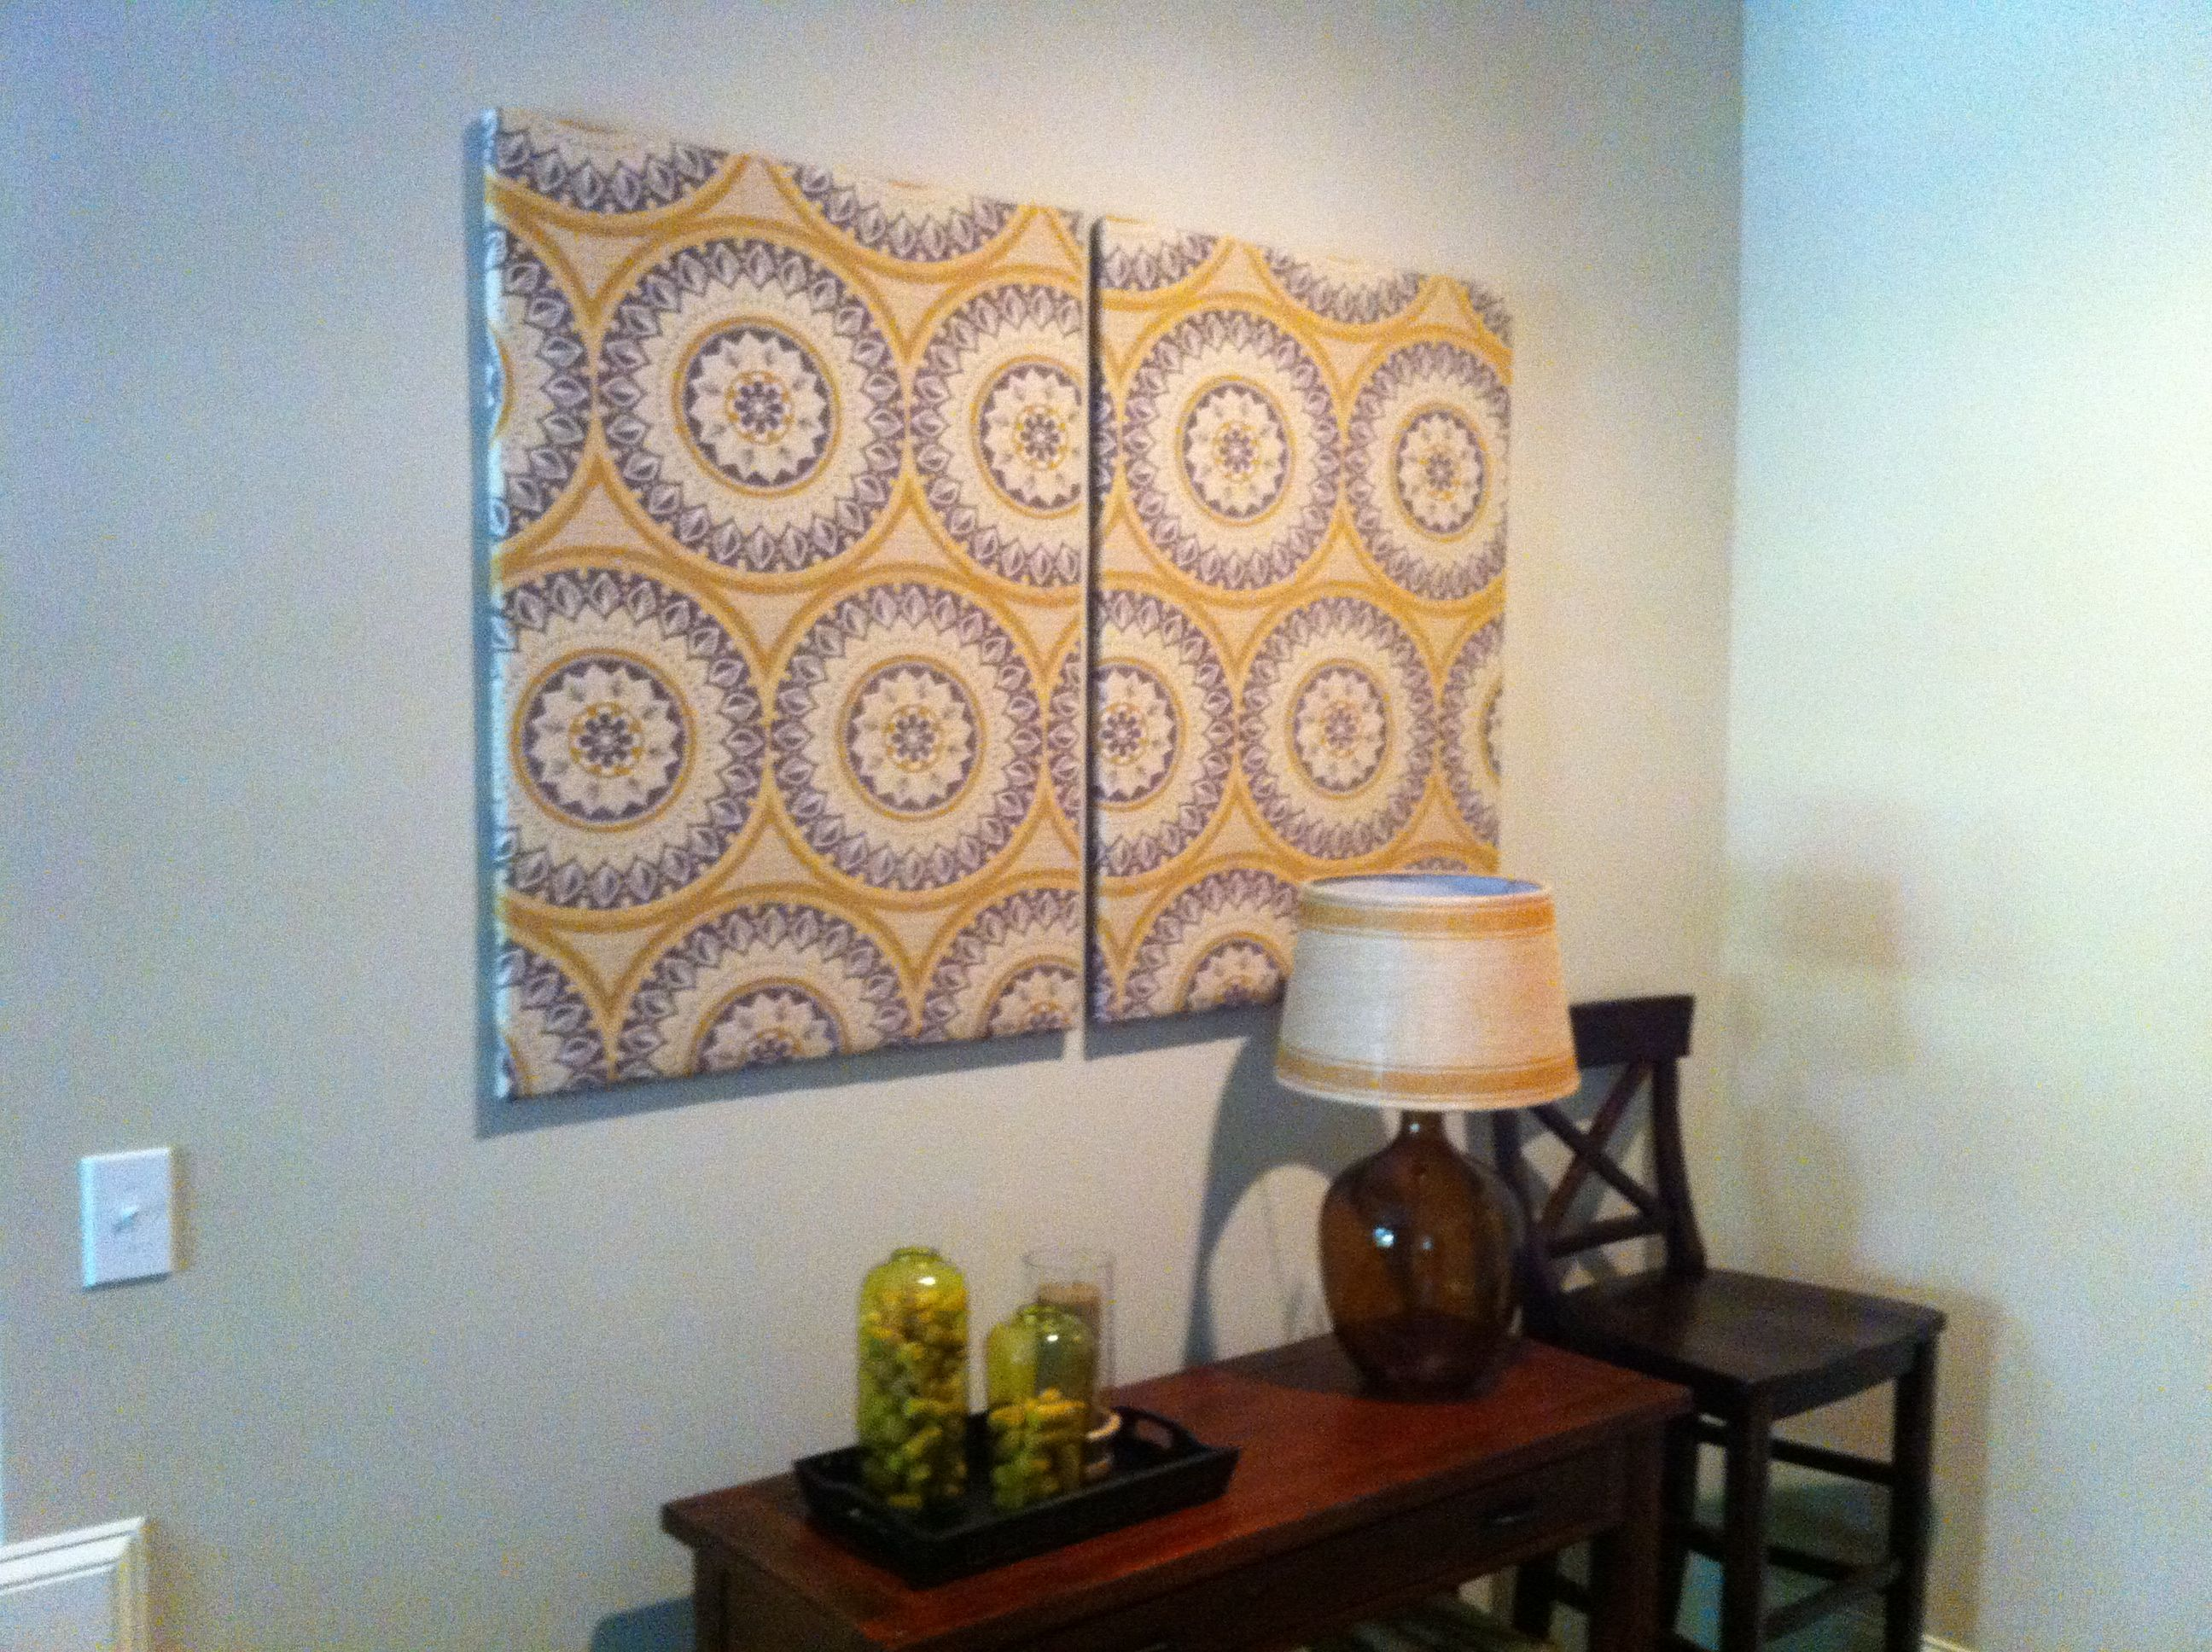 Upholstery Fabric Stapled Gunned To Inexpensive Canvas Frames Creates A